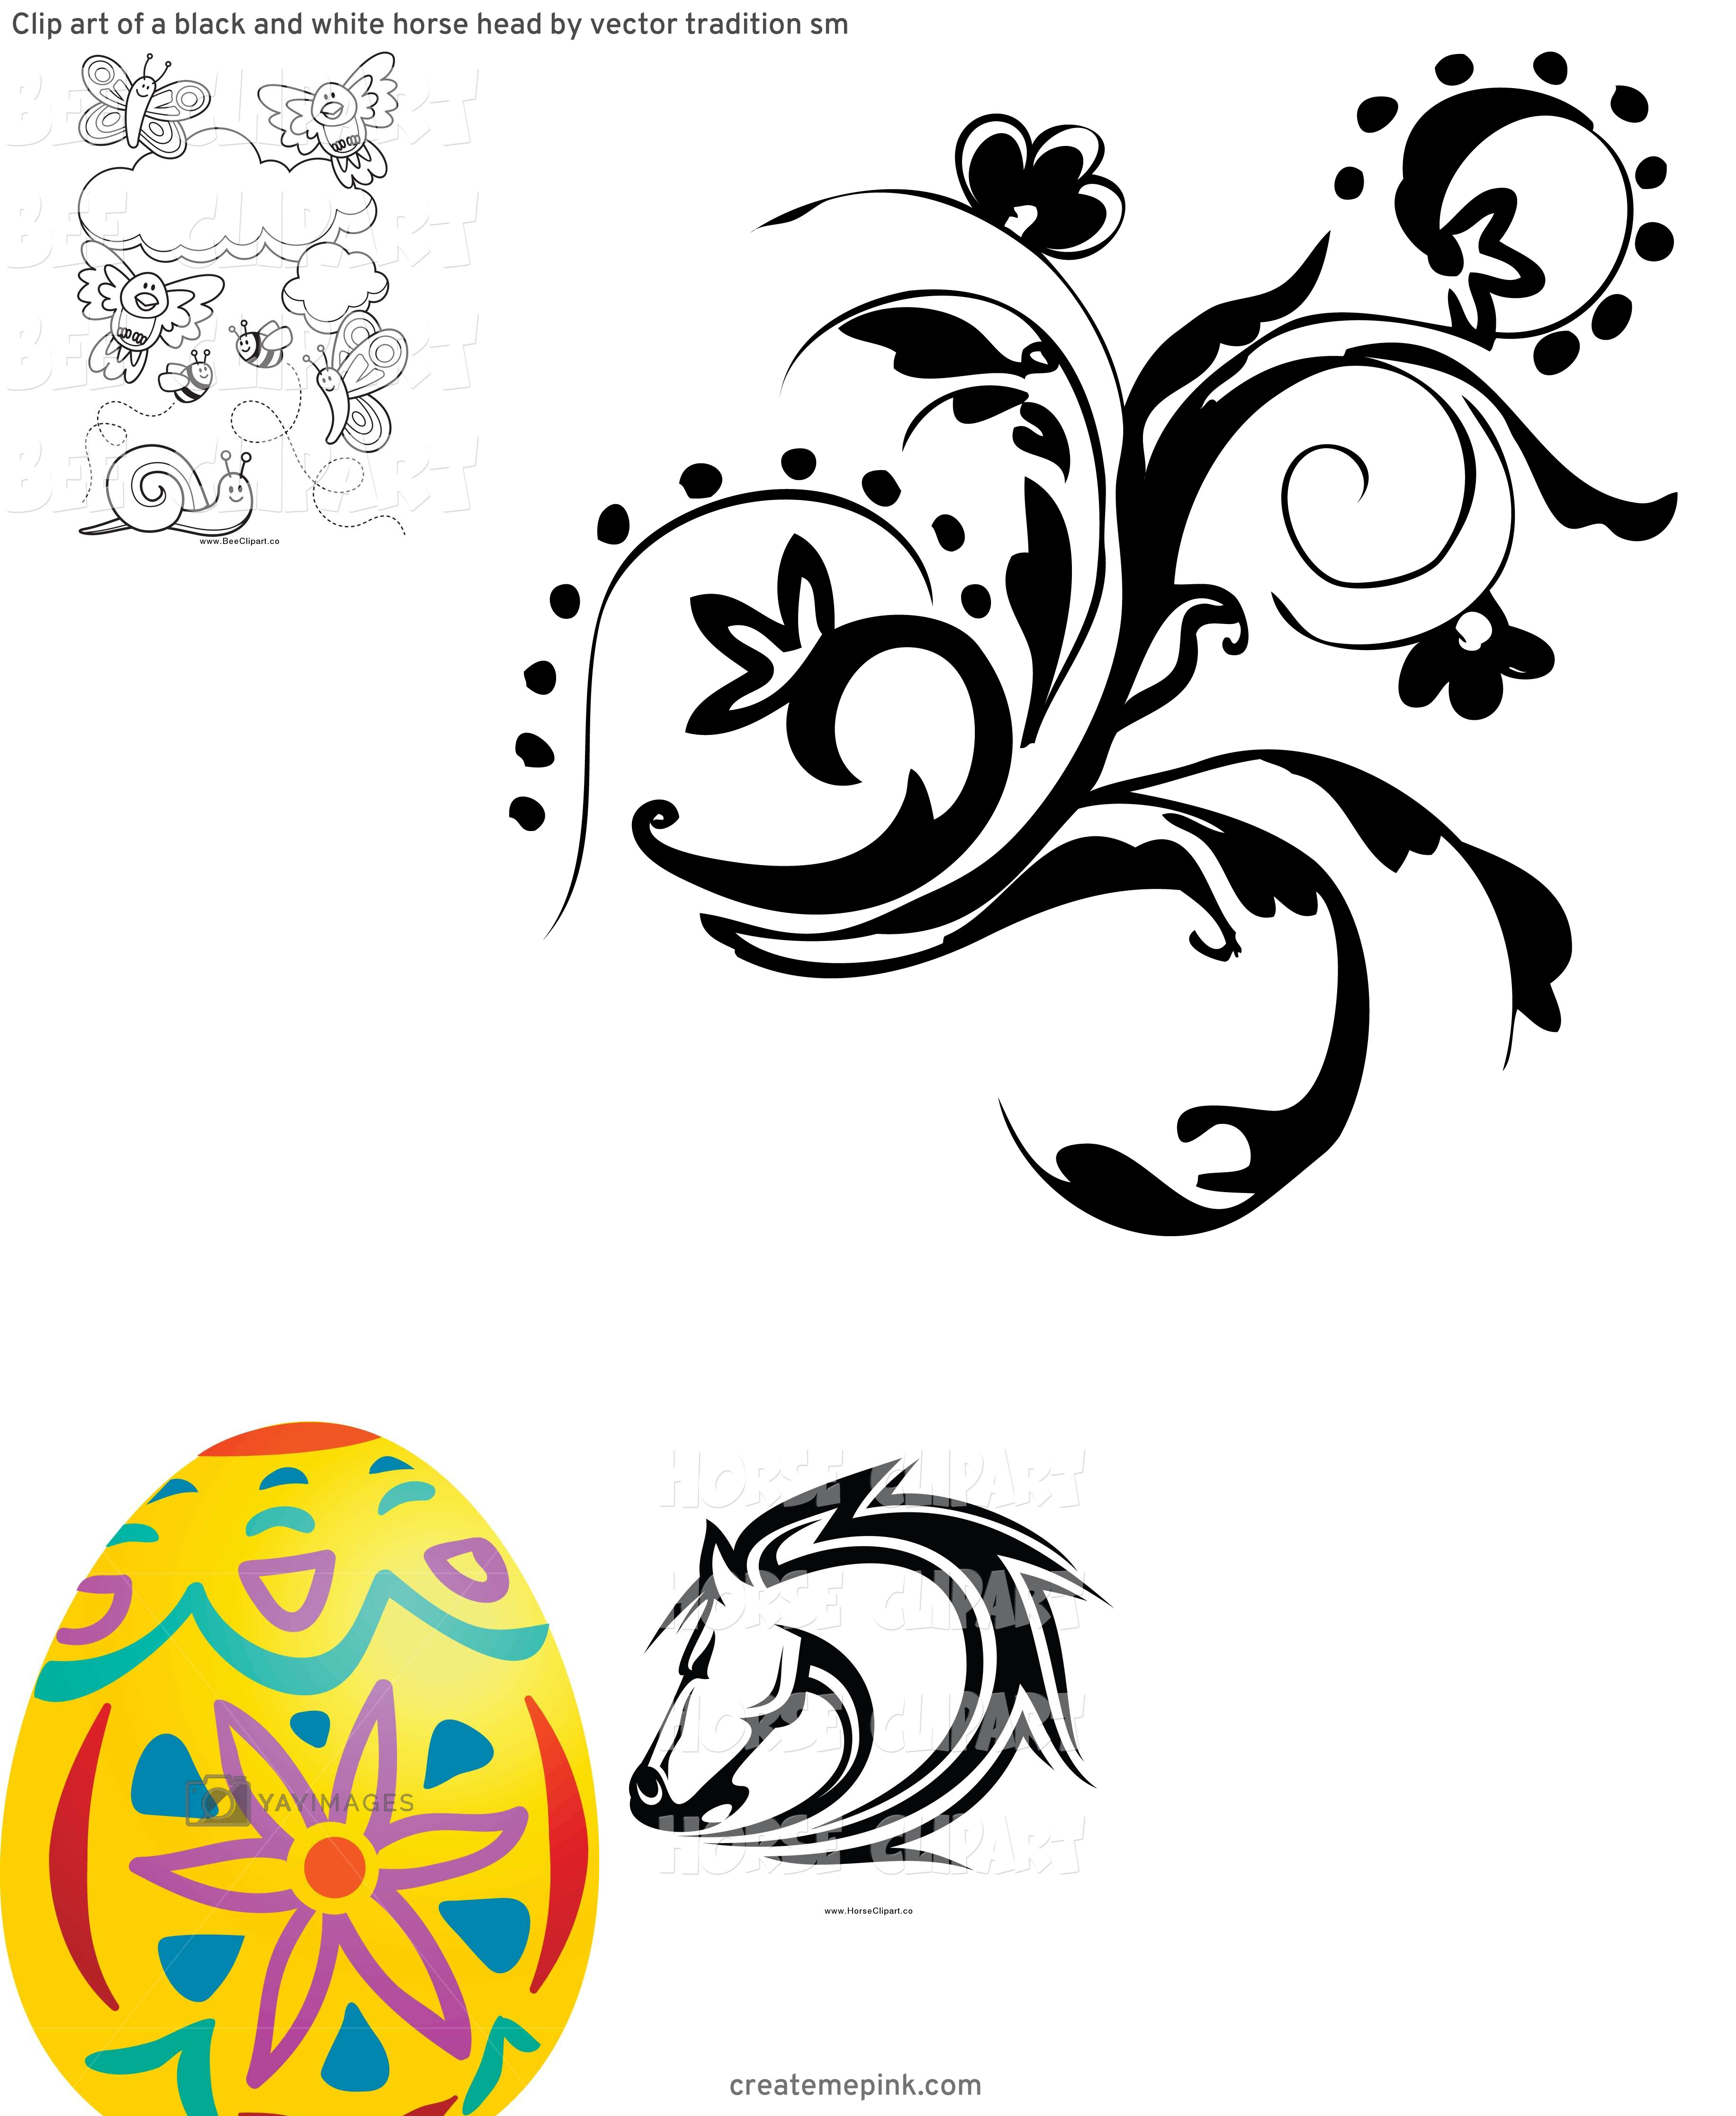 White Clip Art Vector Design: Clip Art Of A Black And White Horse Head By Vector Tradition Sm